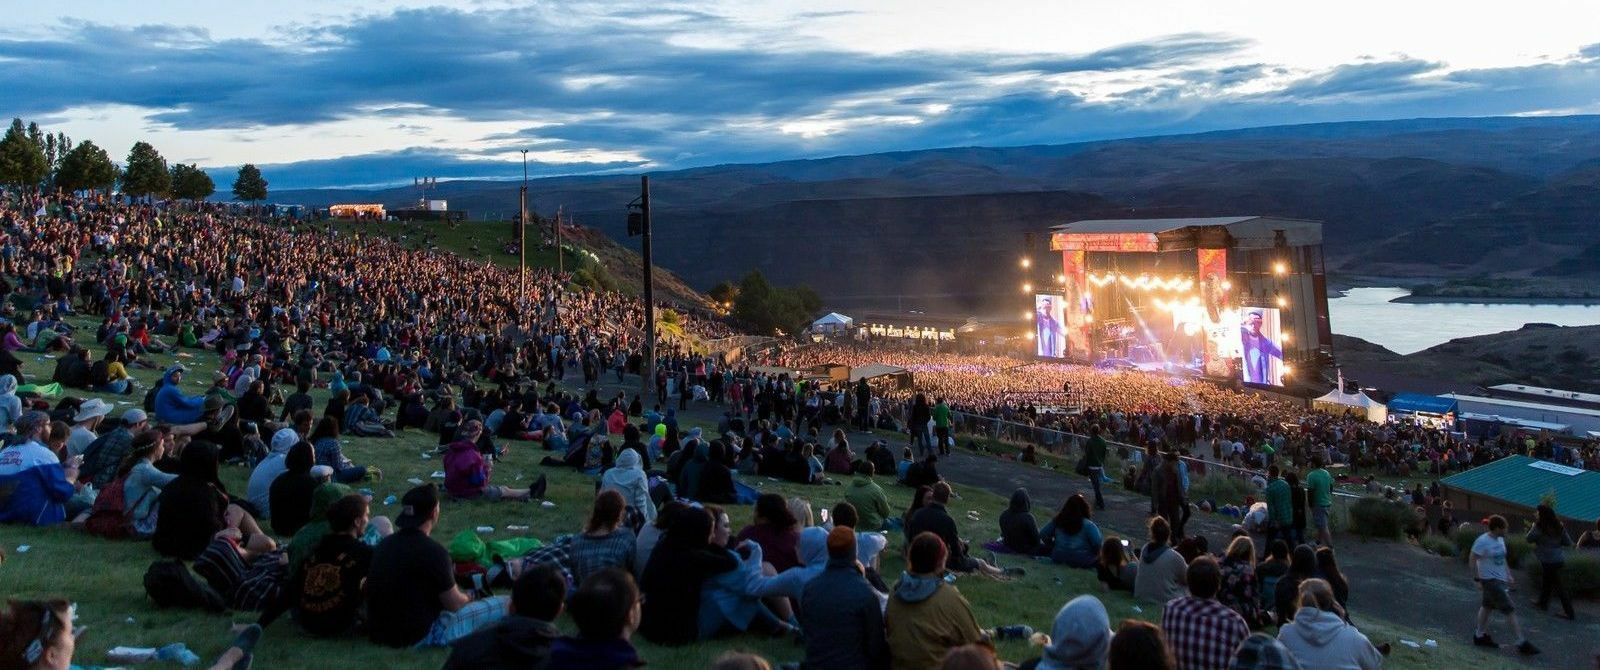 PARKING PASSES ONLY Sasquatch Music Festival Friday Only